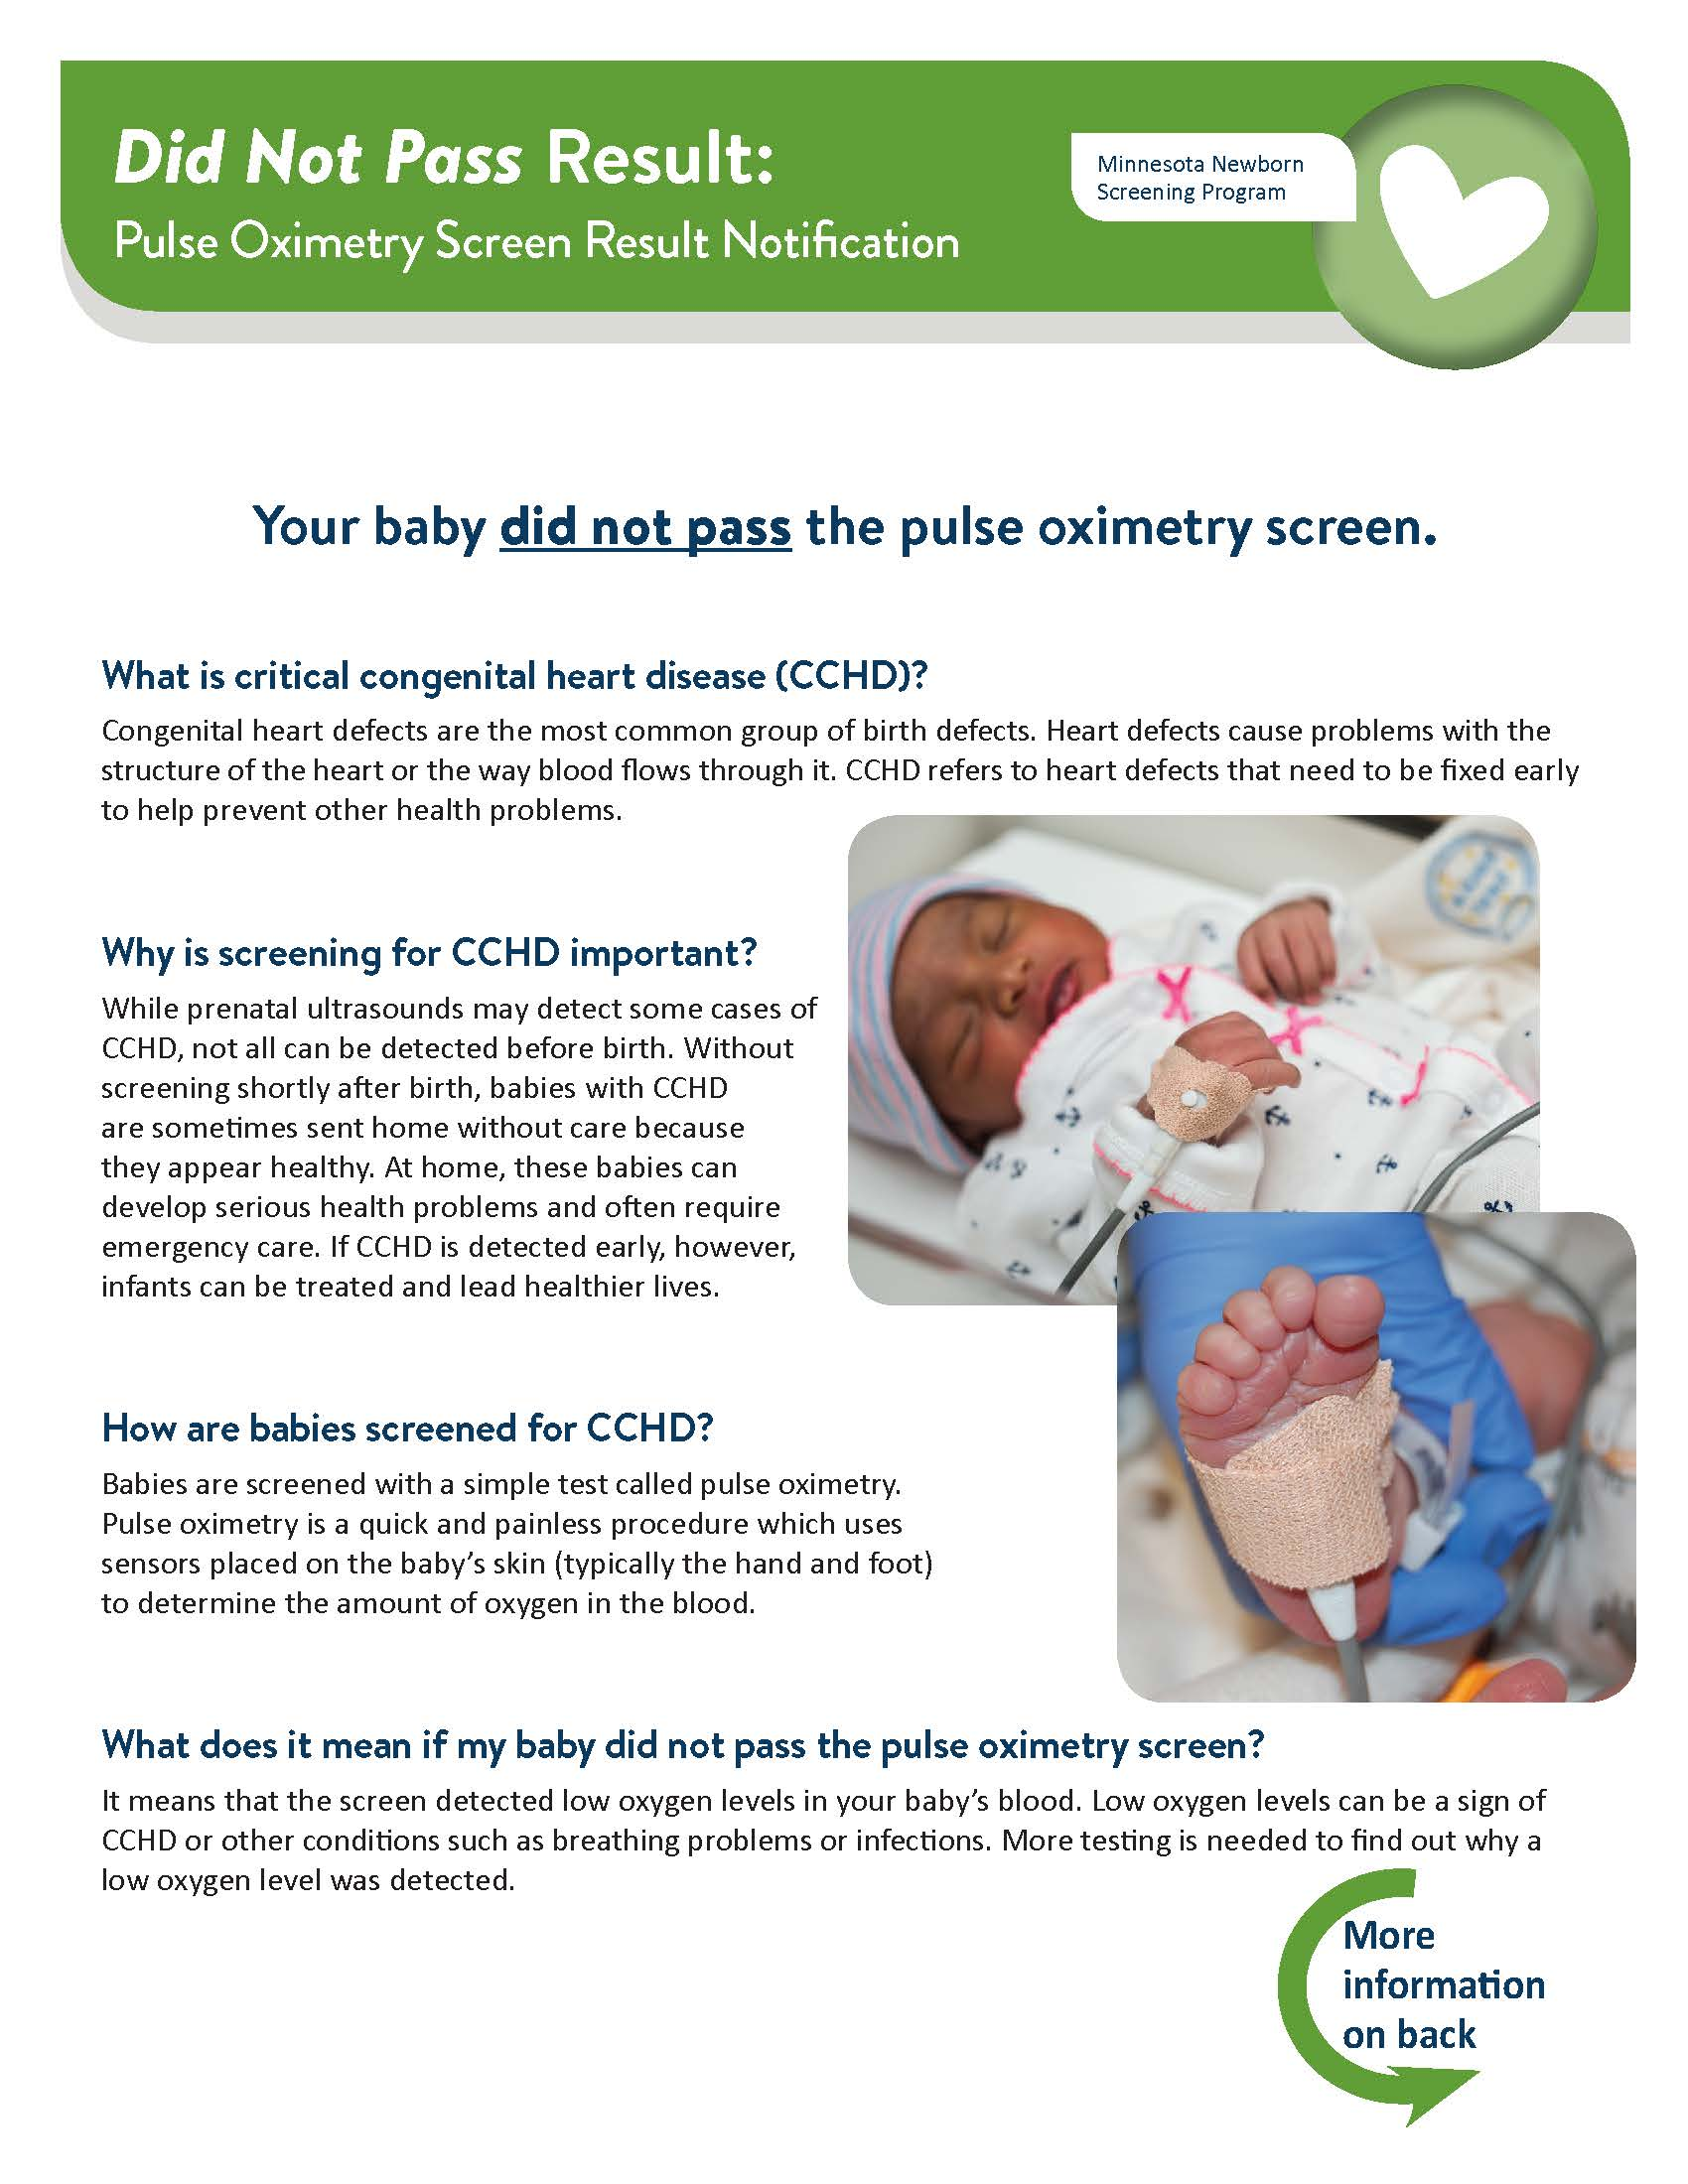 Newborn Pulse Oximetry Screening Did Not Pass Result Notification